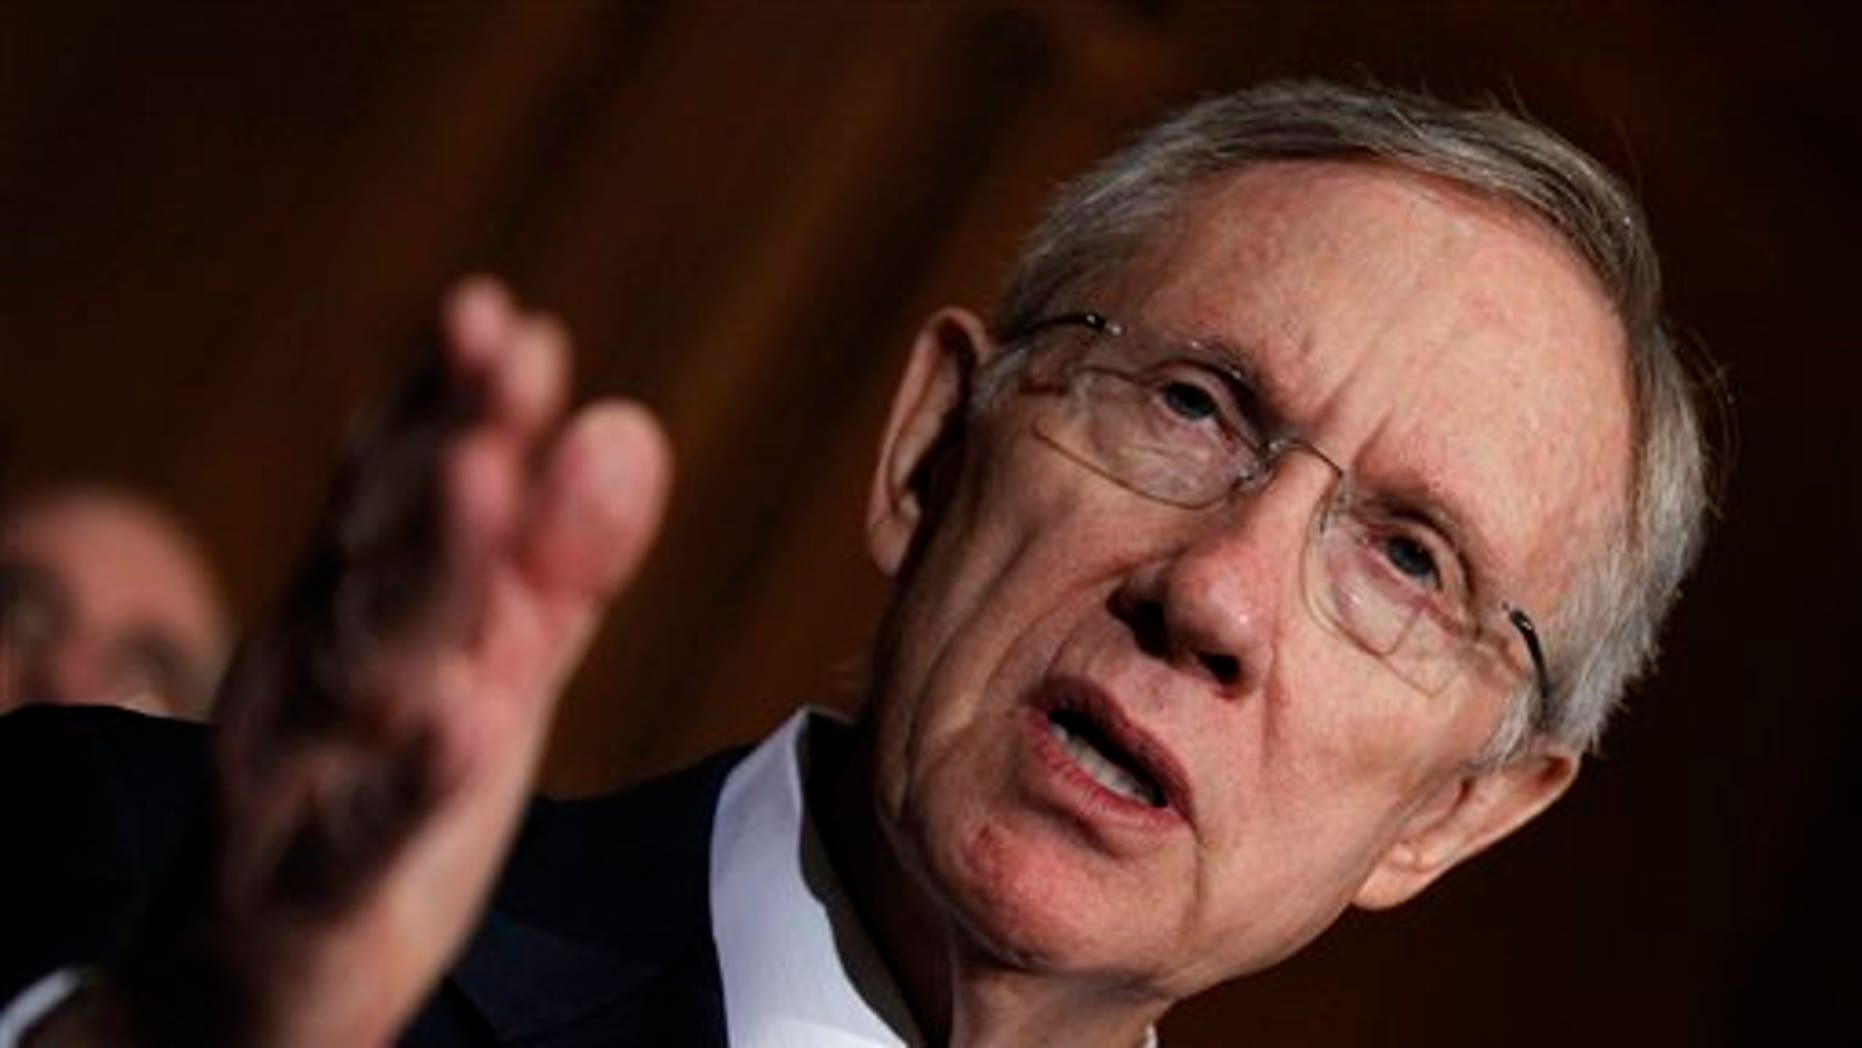 Senate Majority Leader Harry Reid of Nev. gestures during a news conference about the federal medical assistance program, Thursday, Aug. 5, 2010, on Capitol Hill in Washington. (AP Photo/Alex Brandon)